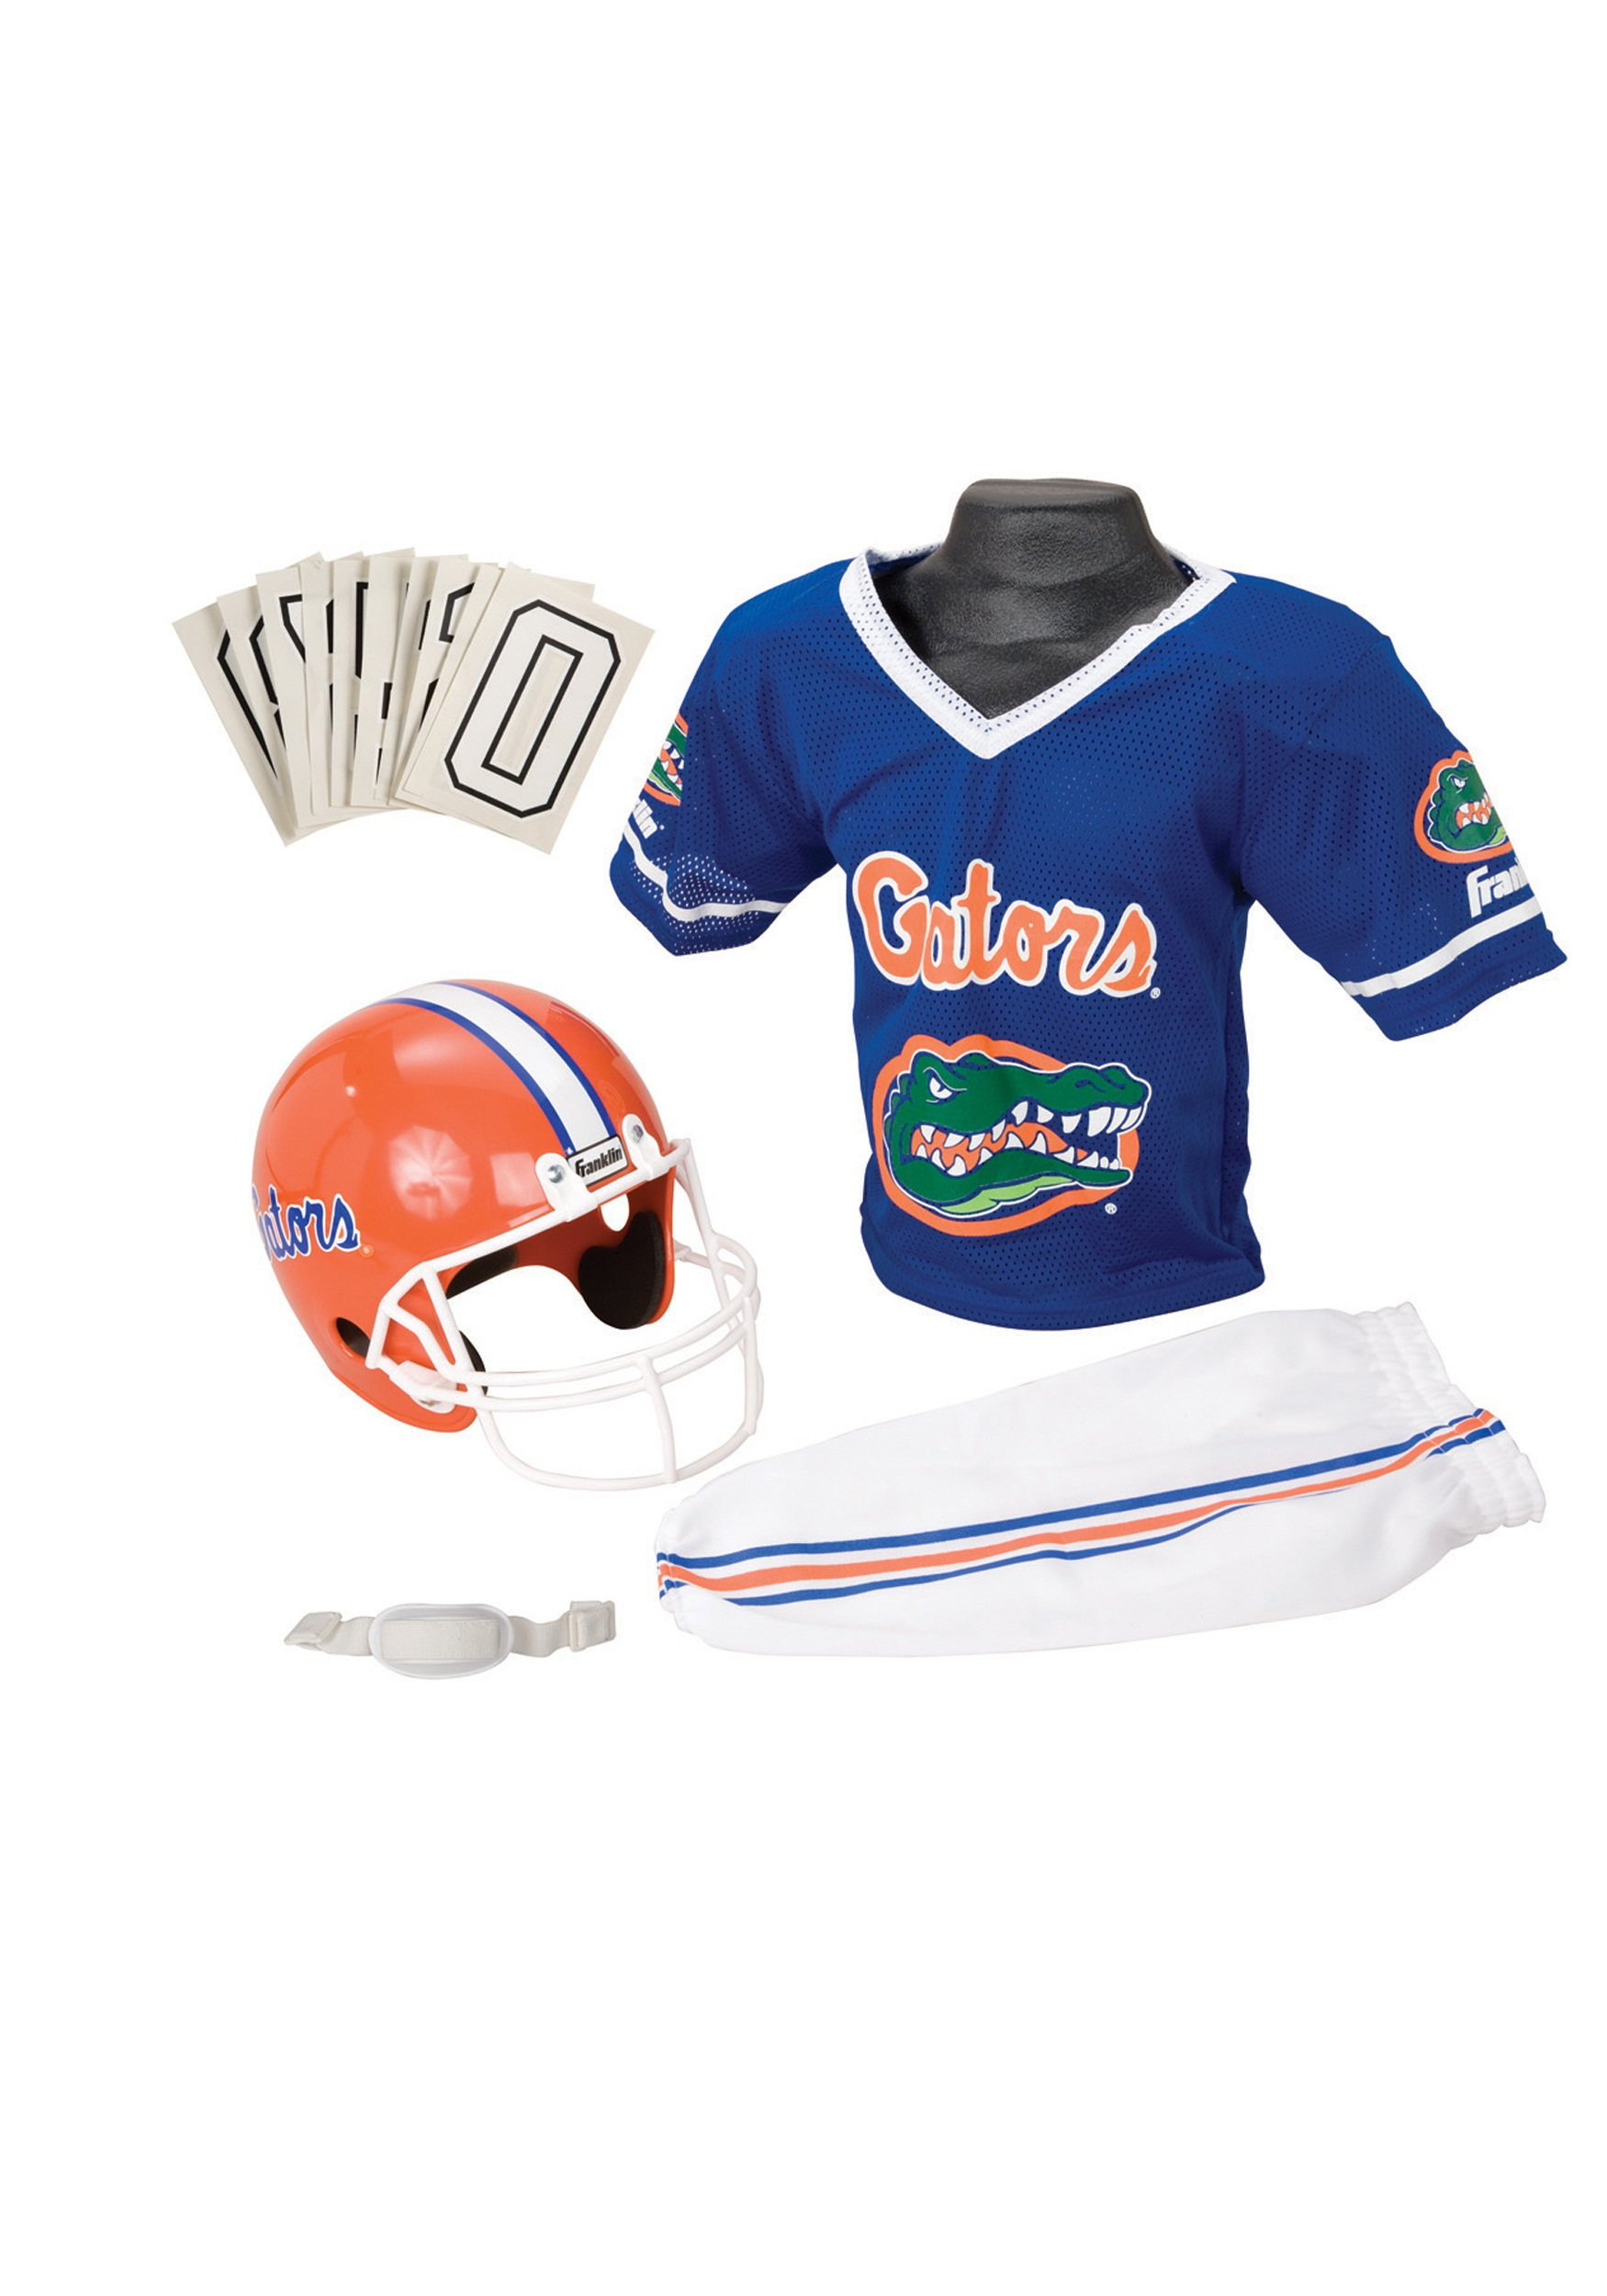 University of Florida Gators Child Uniform